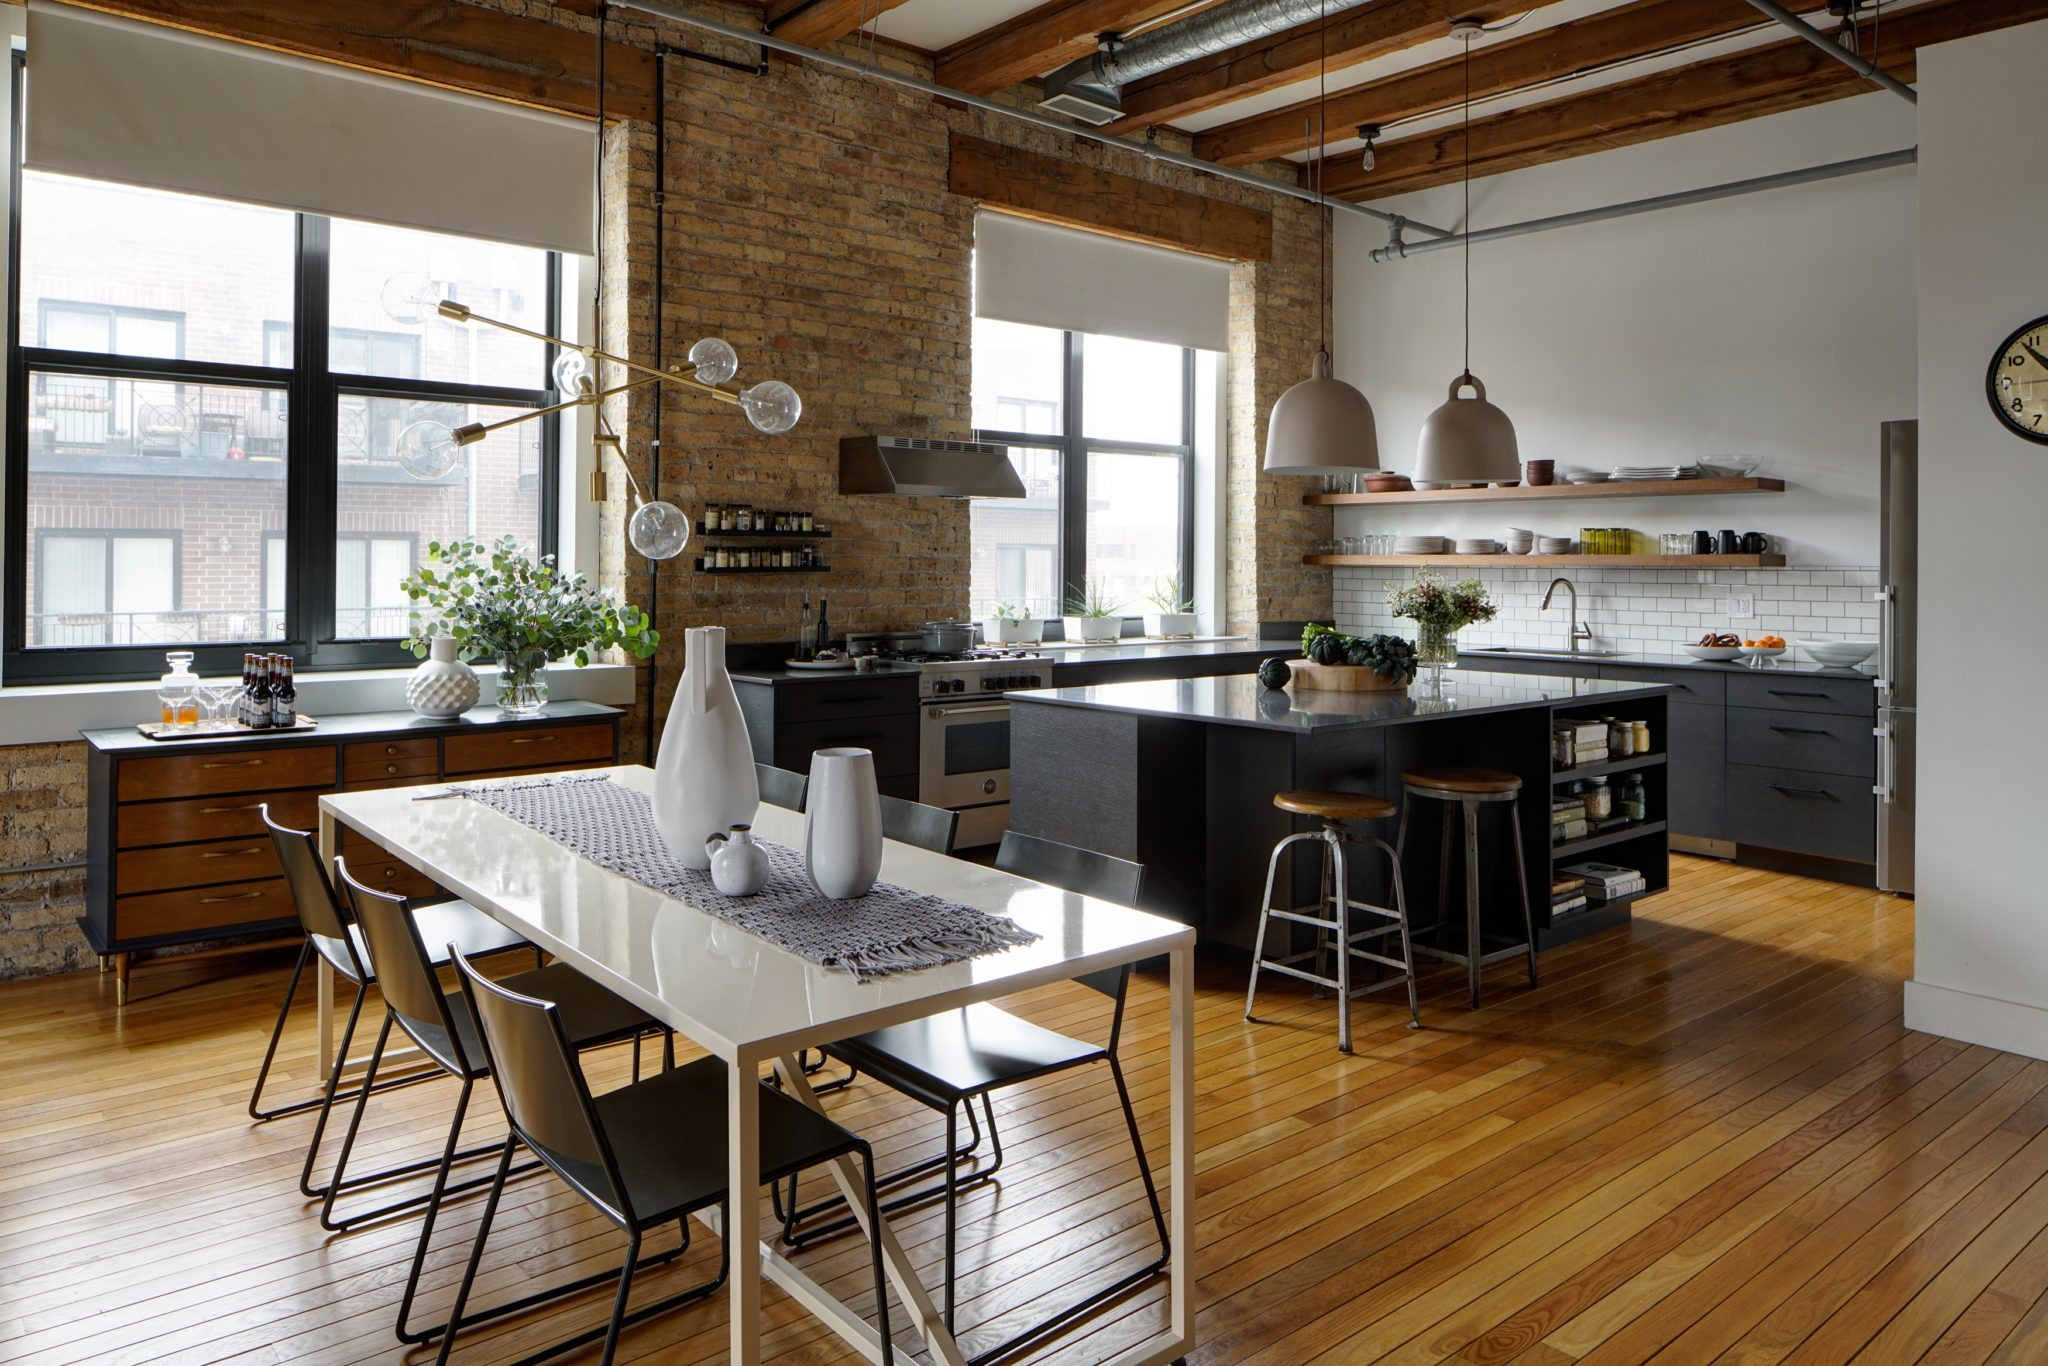 Chicago renovated loft - open concept kitchen and dining room areaby Maren Baker Design